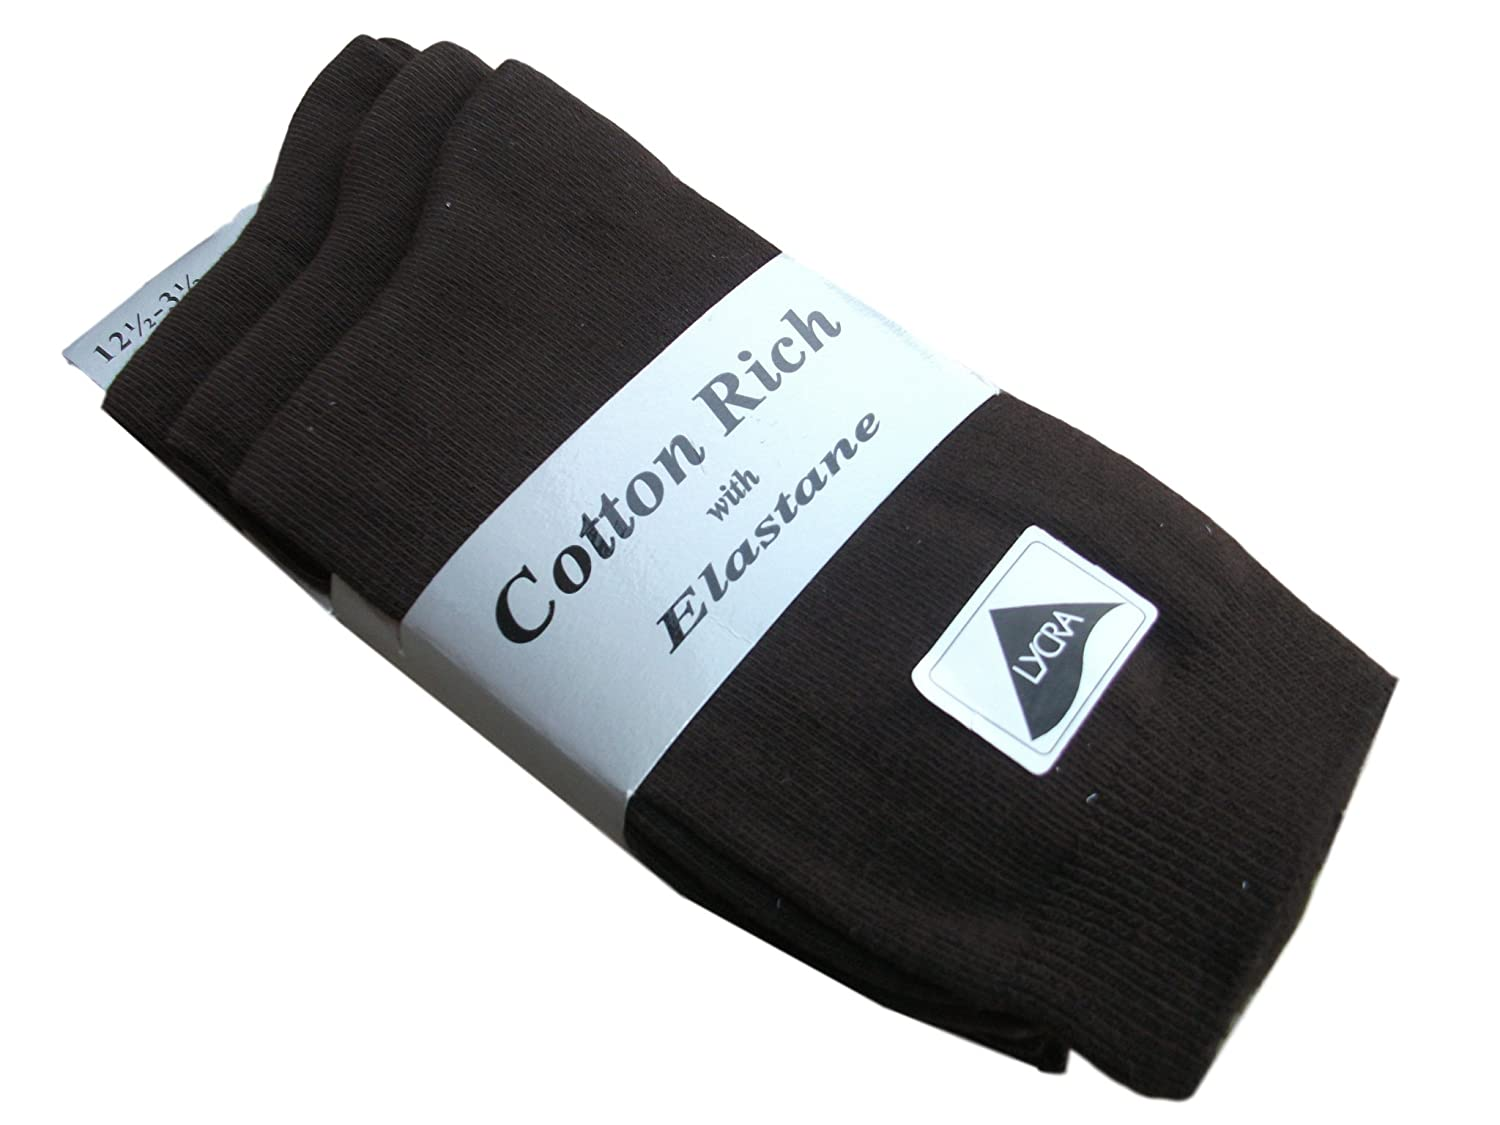 6 Pairs Girls Ankle Socks 75 Percent Cotton Shoe Size uk 4-7 Eur 35-37 Available In 7 Colours Grey Black Burgundy Brown